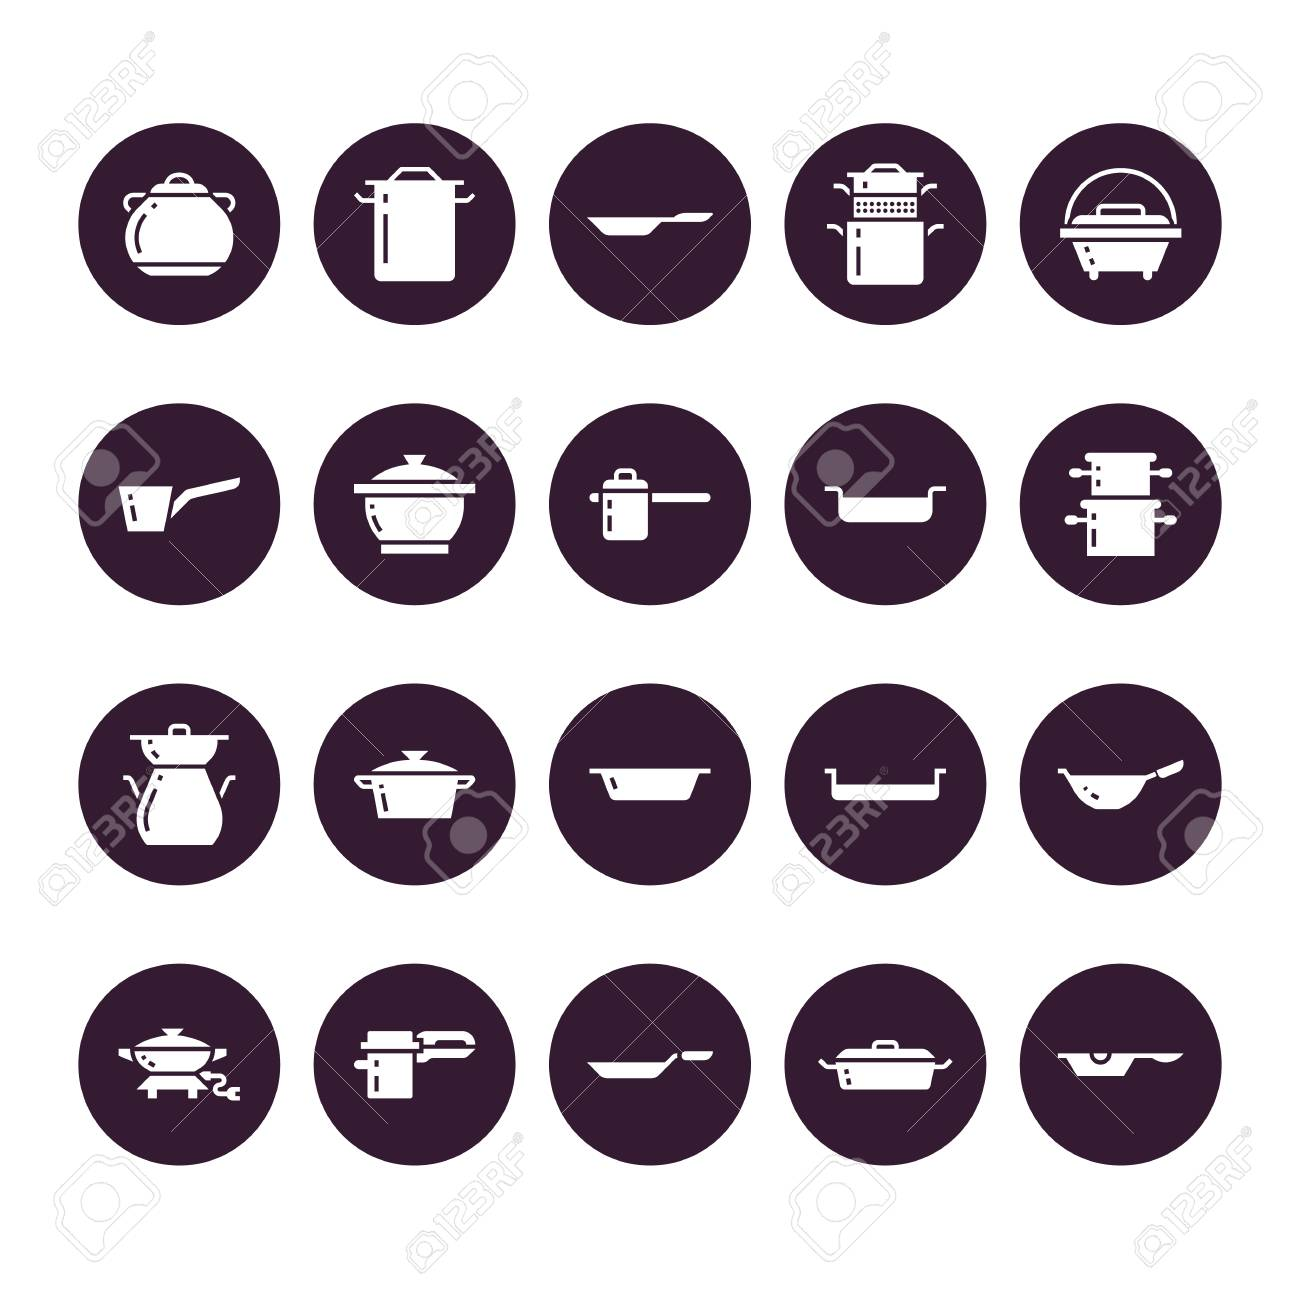 Pot, pan and steamer glyph icons. Restaurant professional equipment signs. Kitchen utensil - wok, saucepan, eathernware dish. Silhouette signs for commercial cooking store. Pixel perfect 64x64. - 104834431